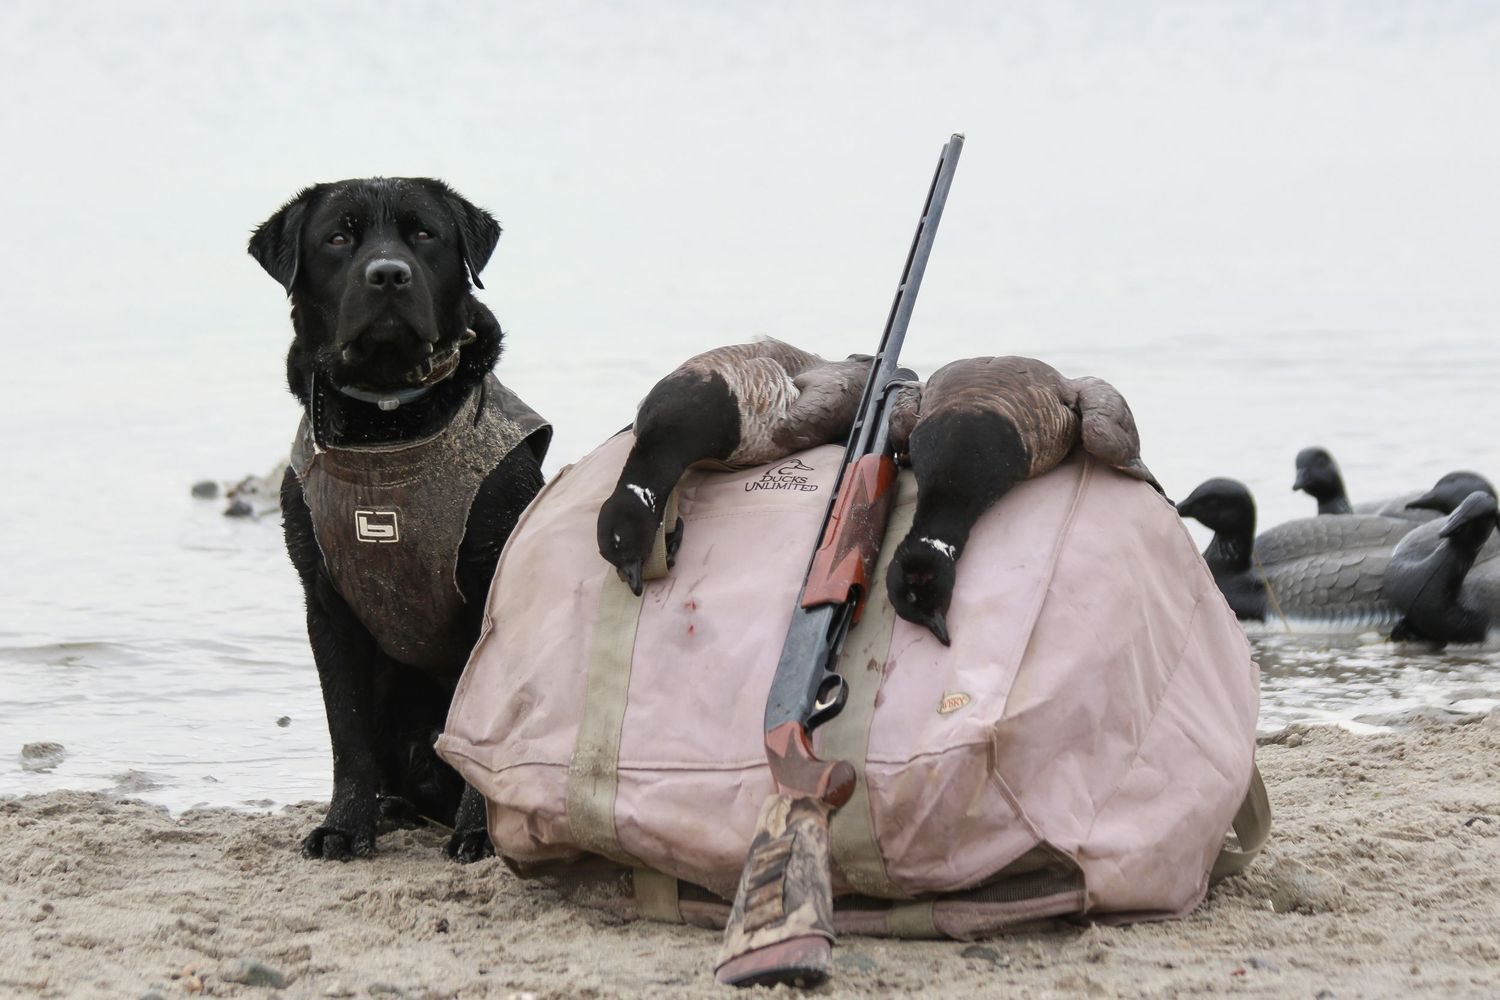 Black Lab with Brant on Rhode Island beach hunt